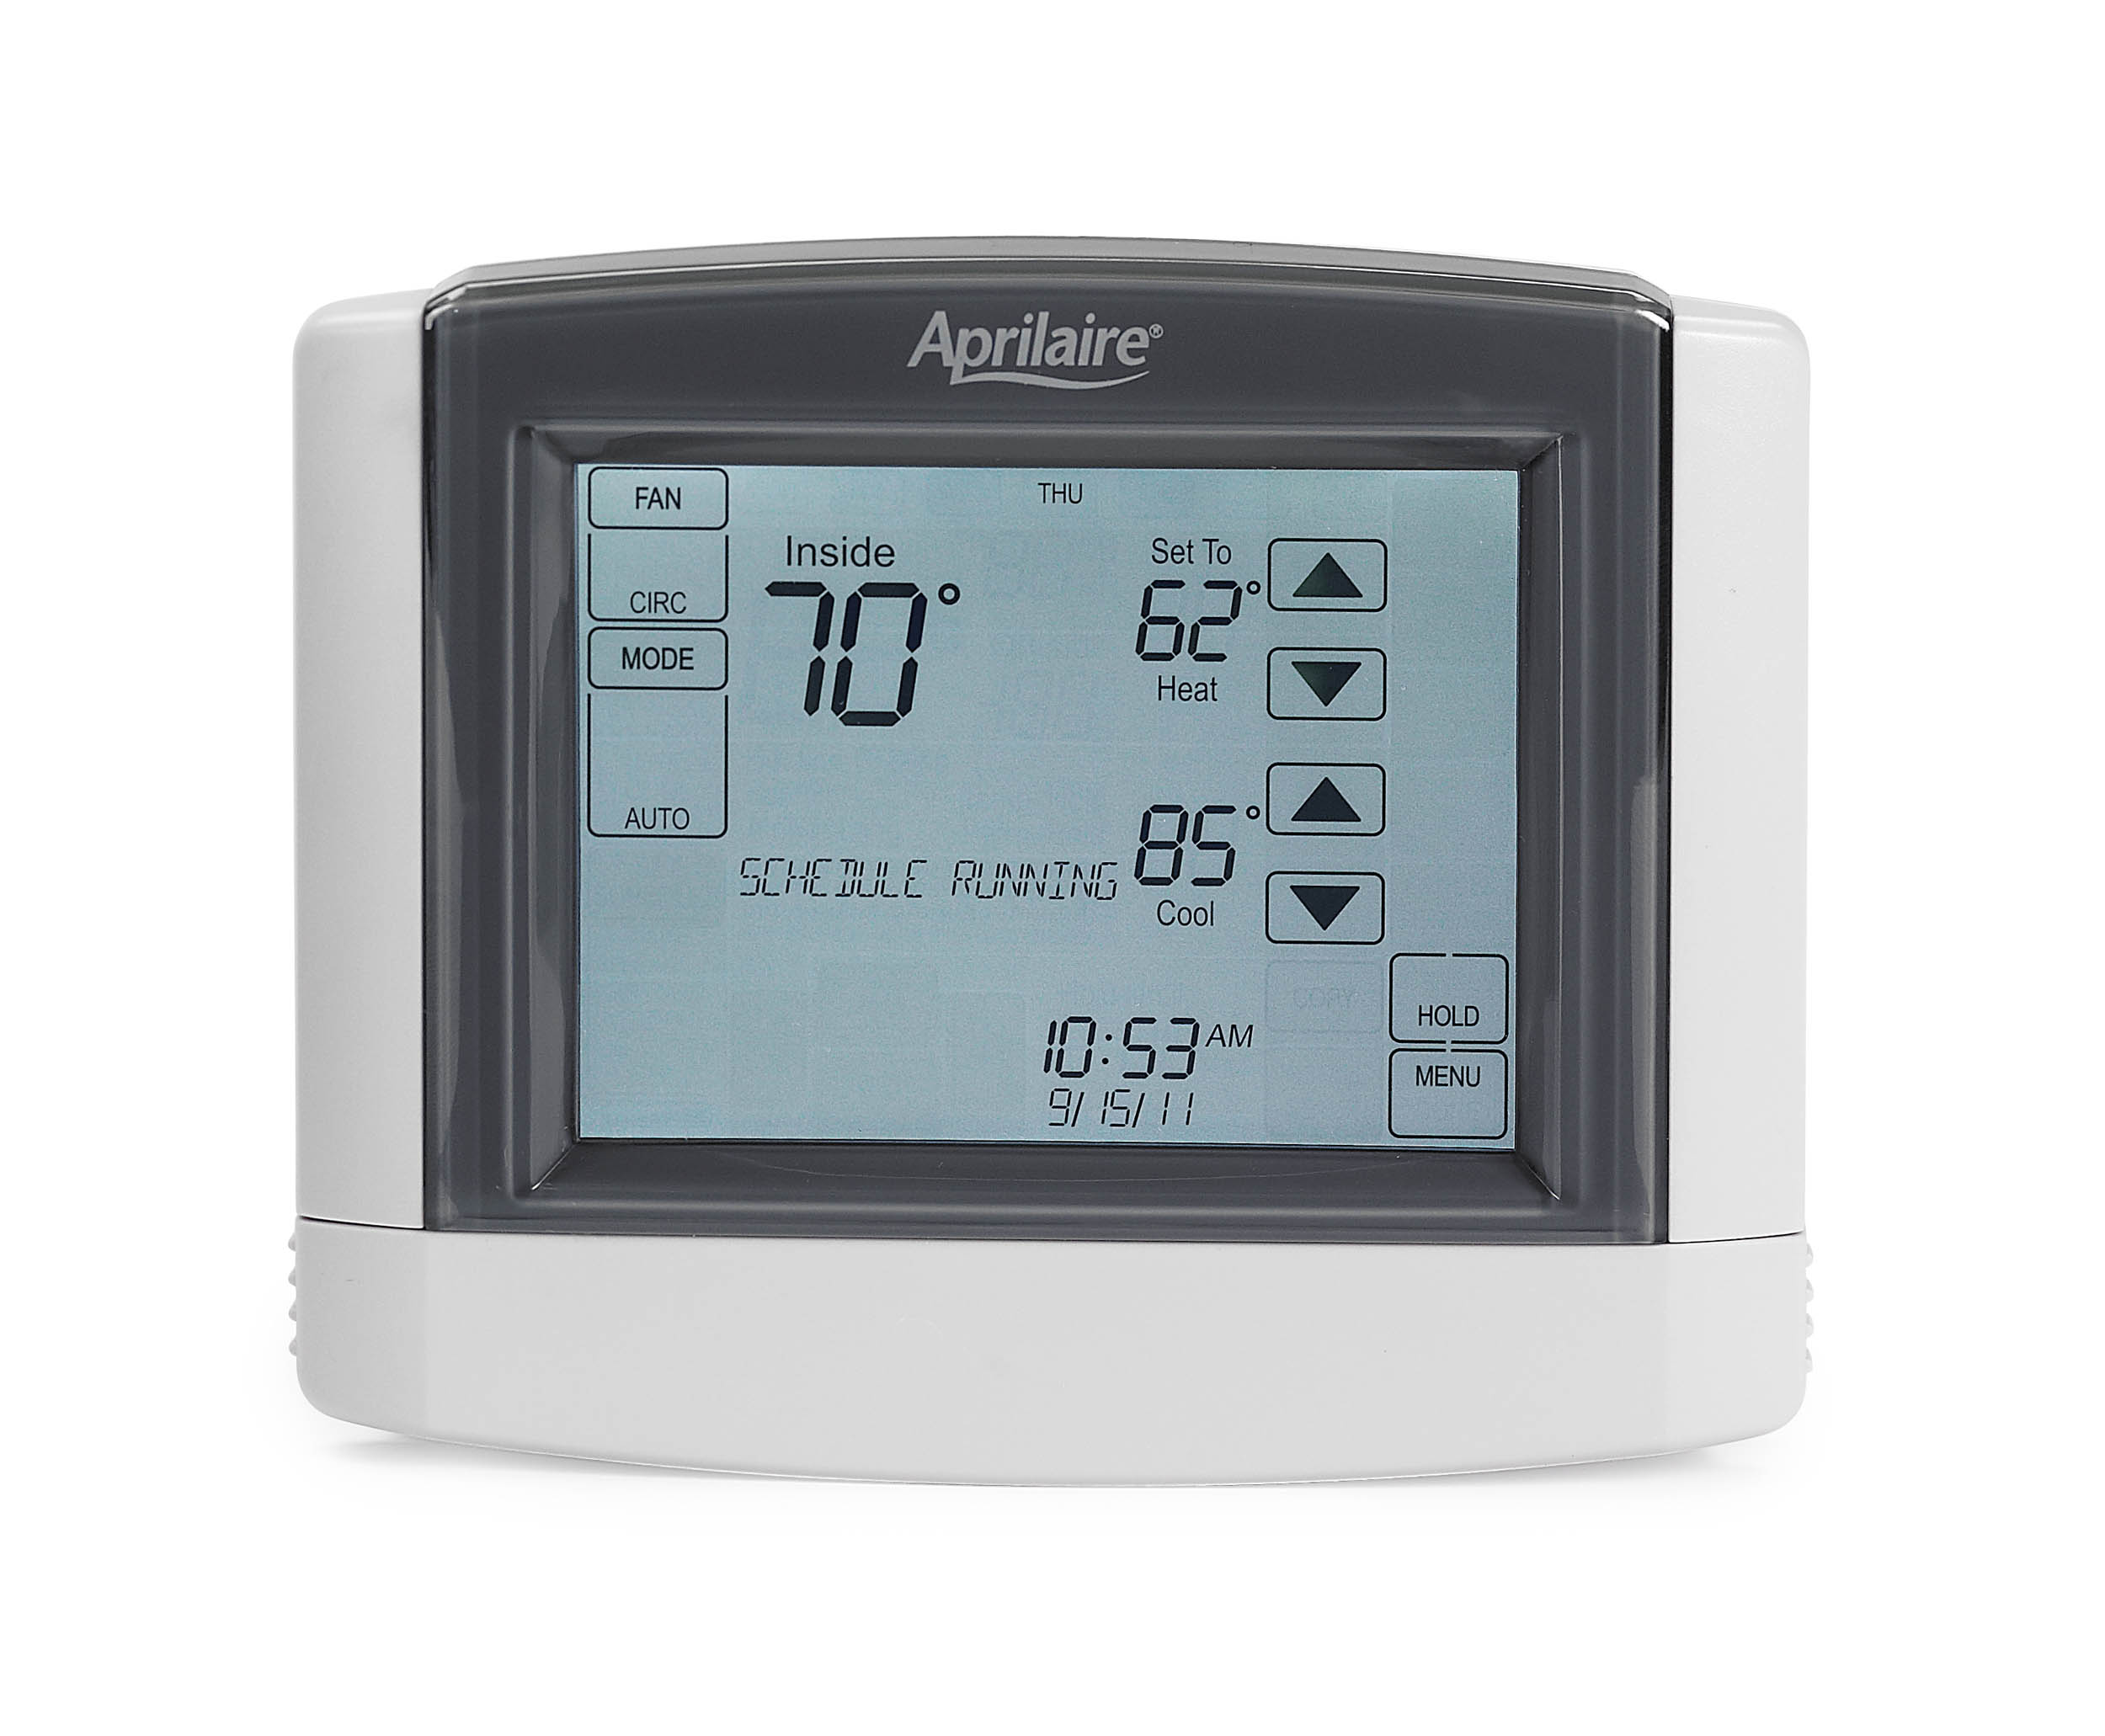 This integrates dehumidifier control into a programmable thermostat  #526F79